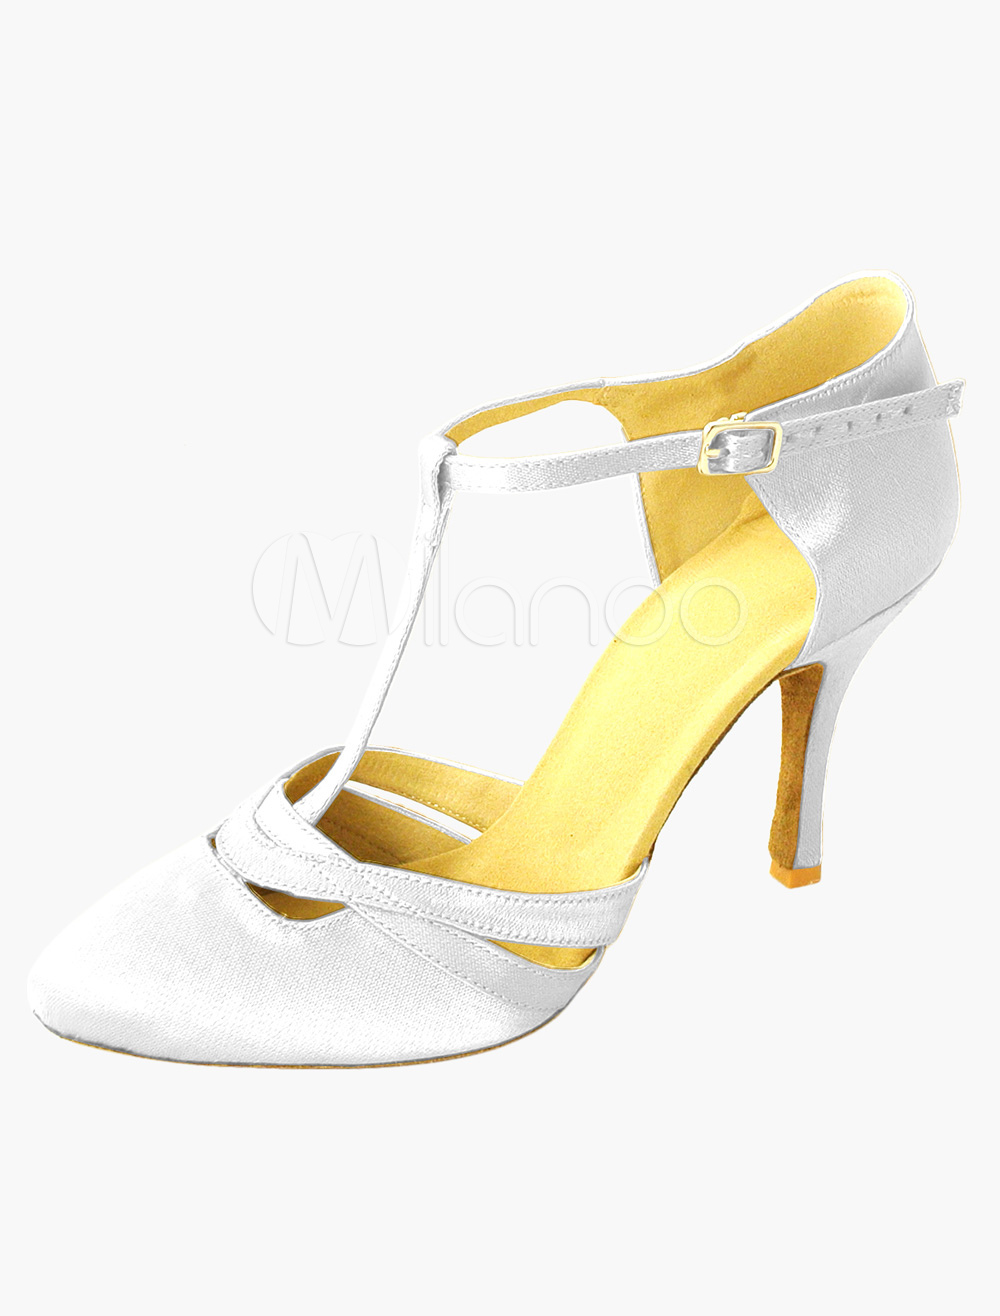 Satin Dance Shoes Round Toe T Type  Professional Latin Dancing Shoes Ballroom Shoes